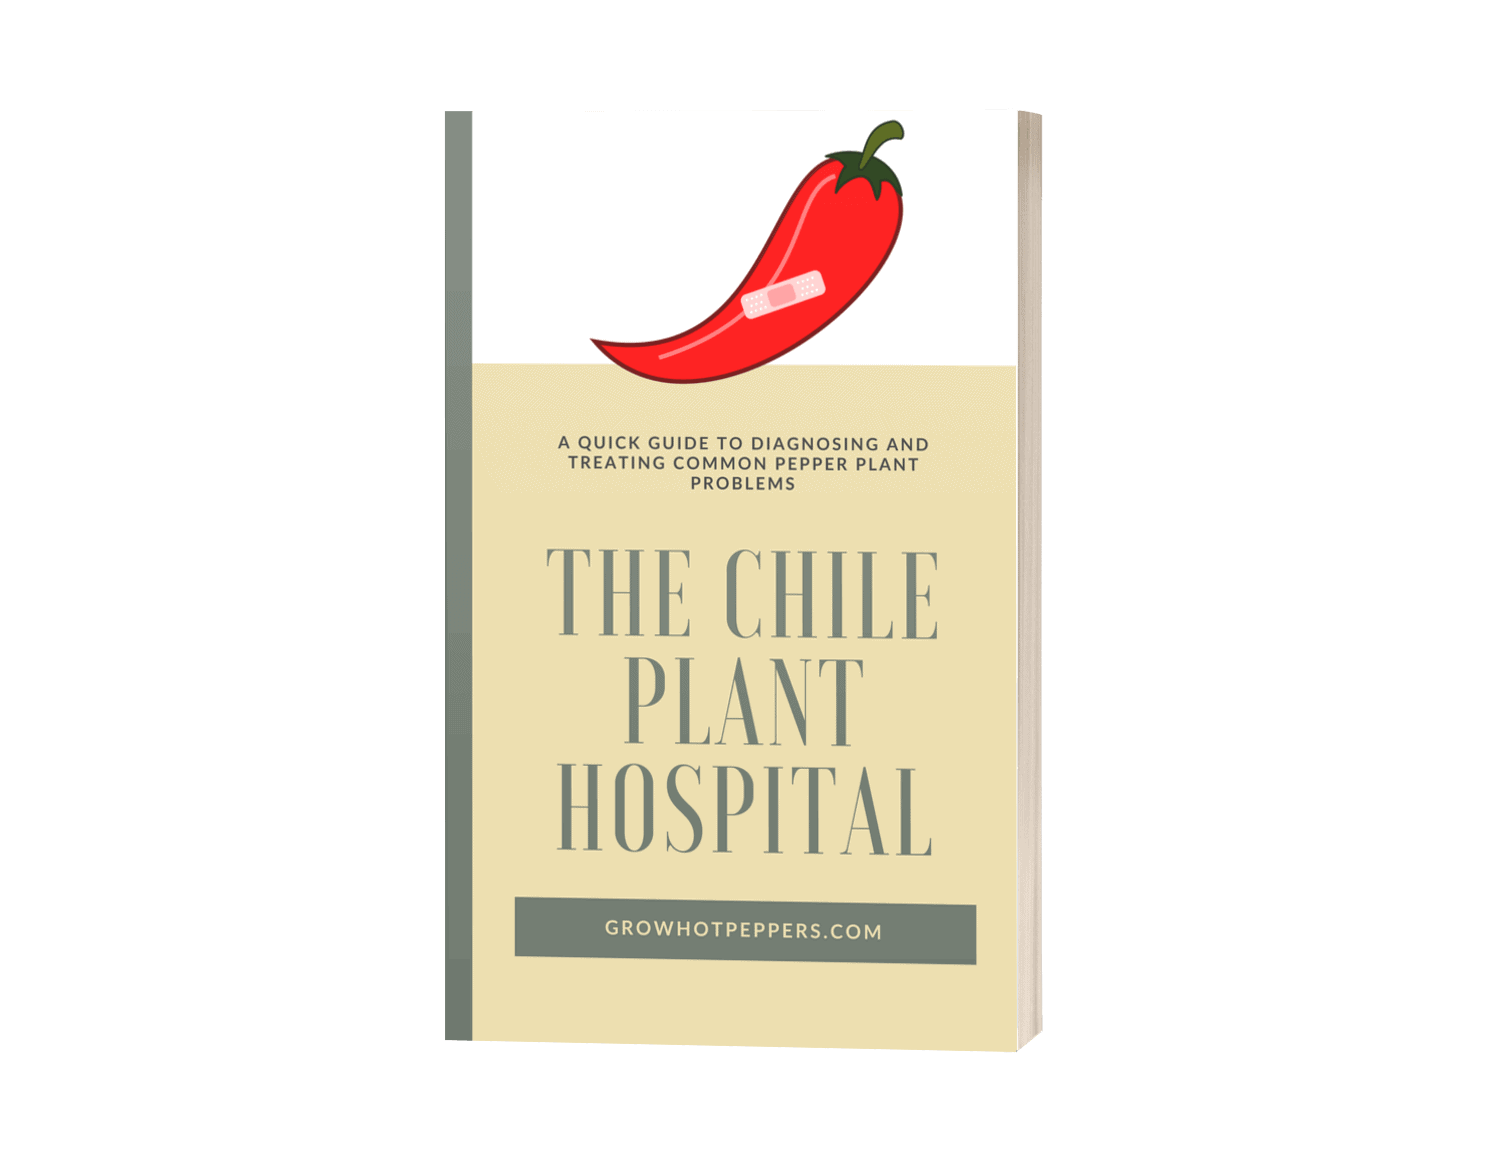 The Chile Plant Hospital Ebook image facing front